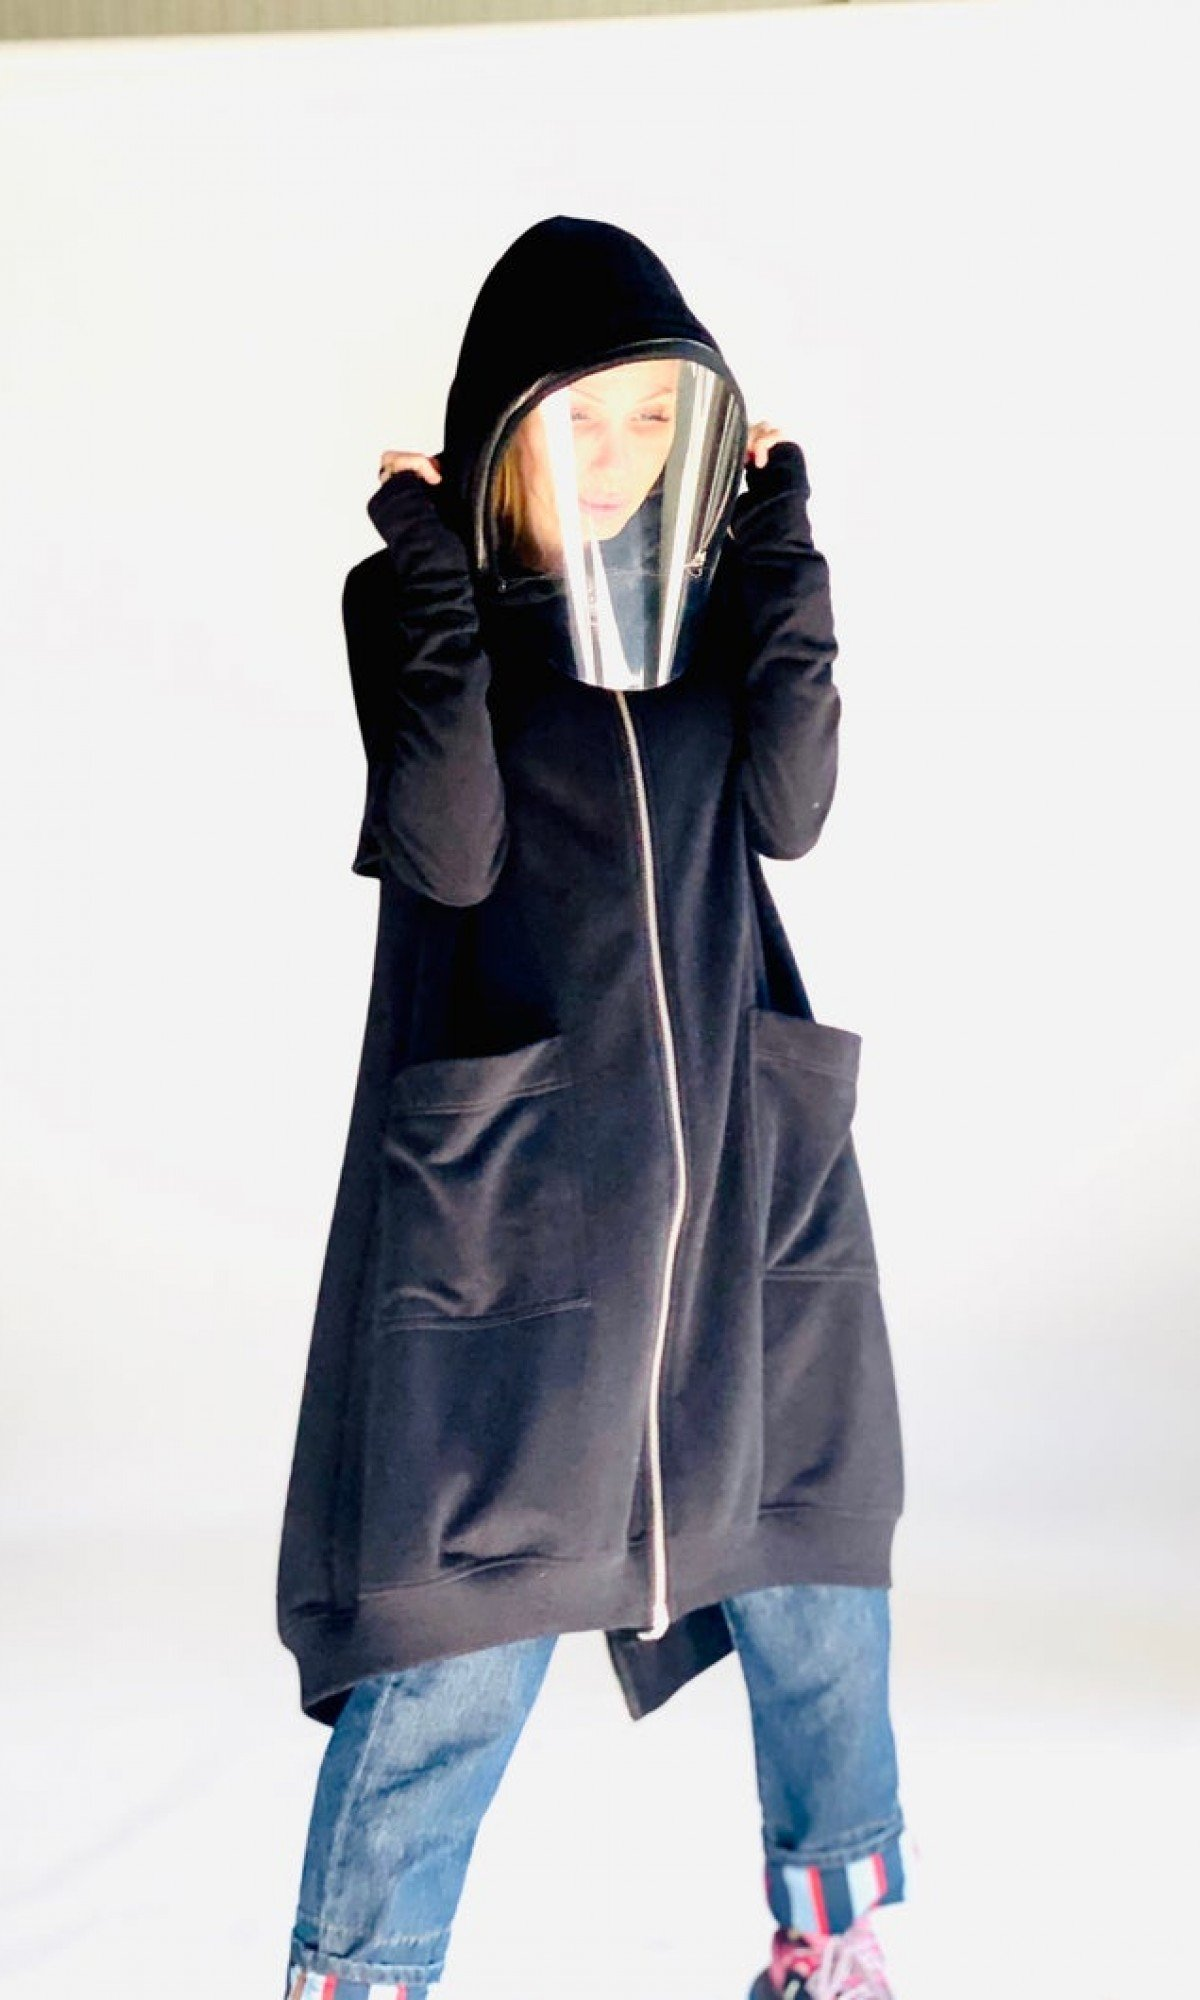 Shield Maxi Asymmetric Hoodie / Terry Cotton Zipper full face covering Top / zip or unzip it with 2 extra shields